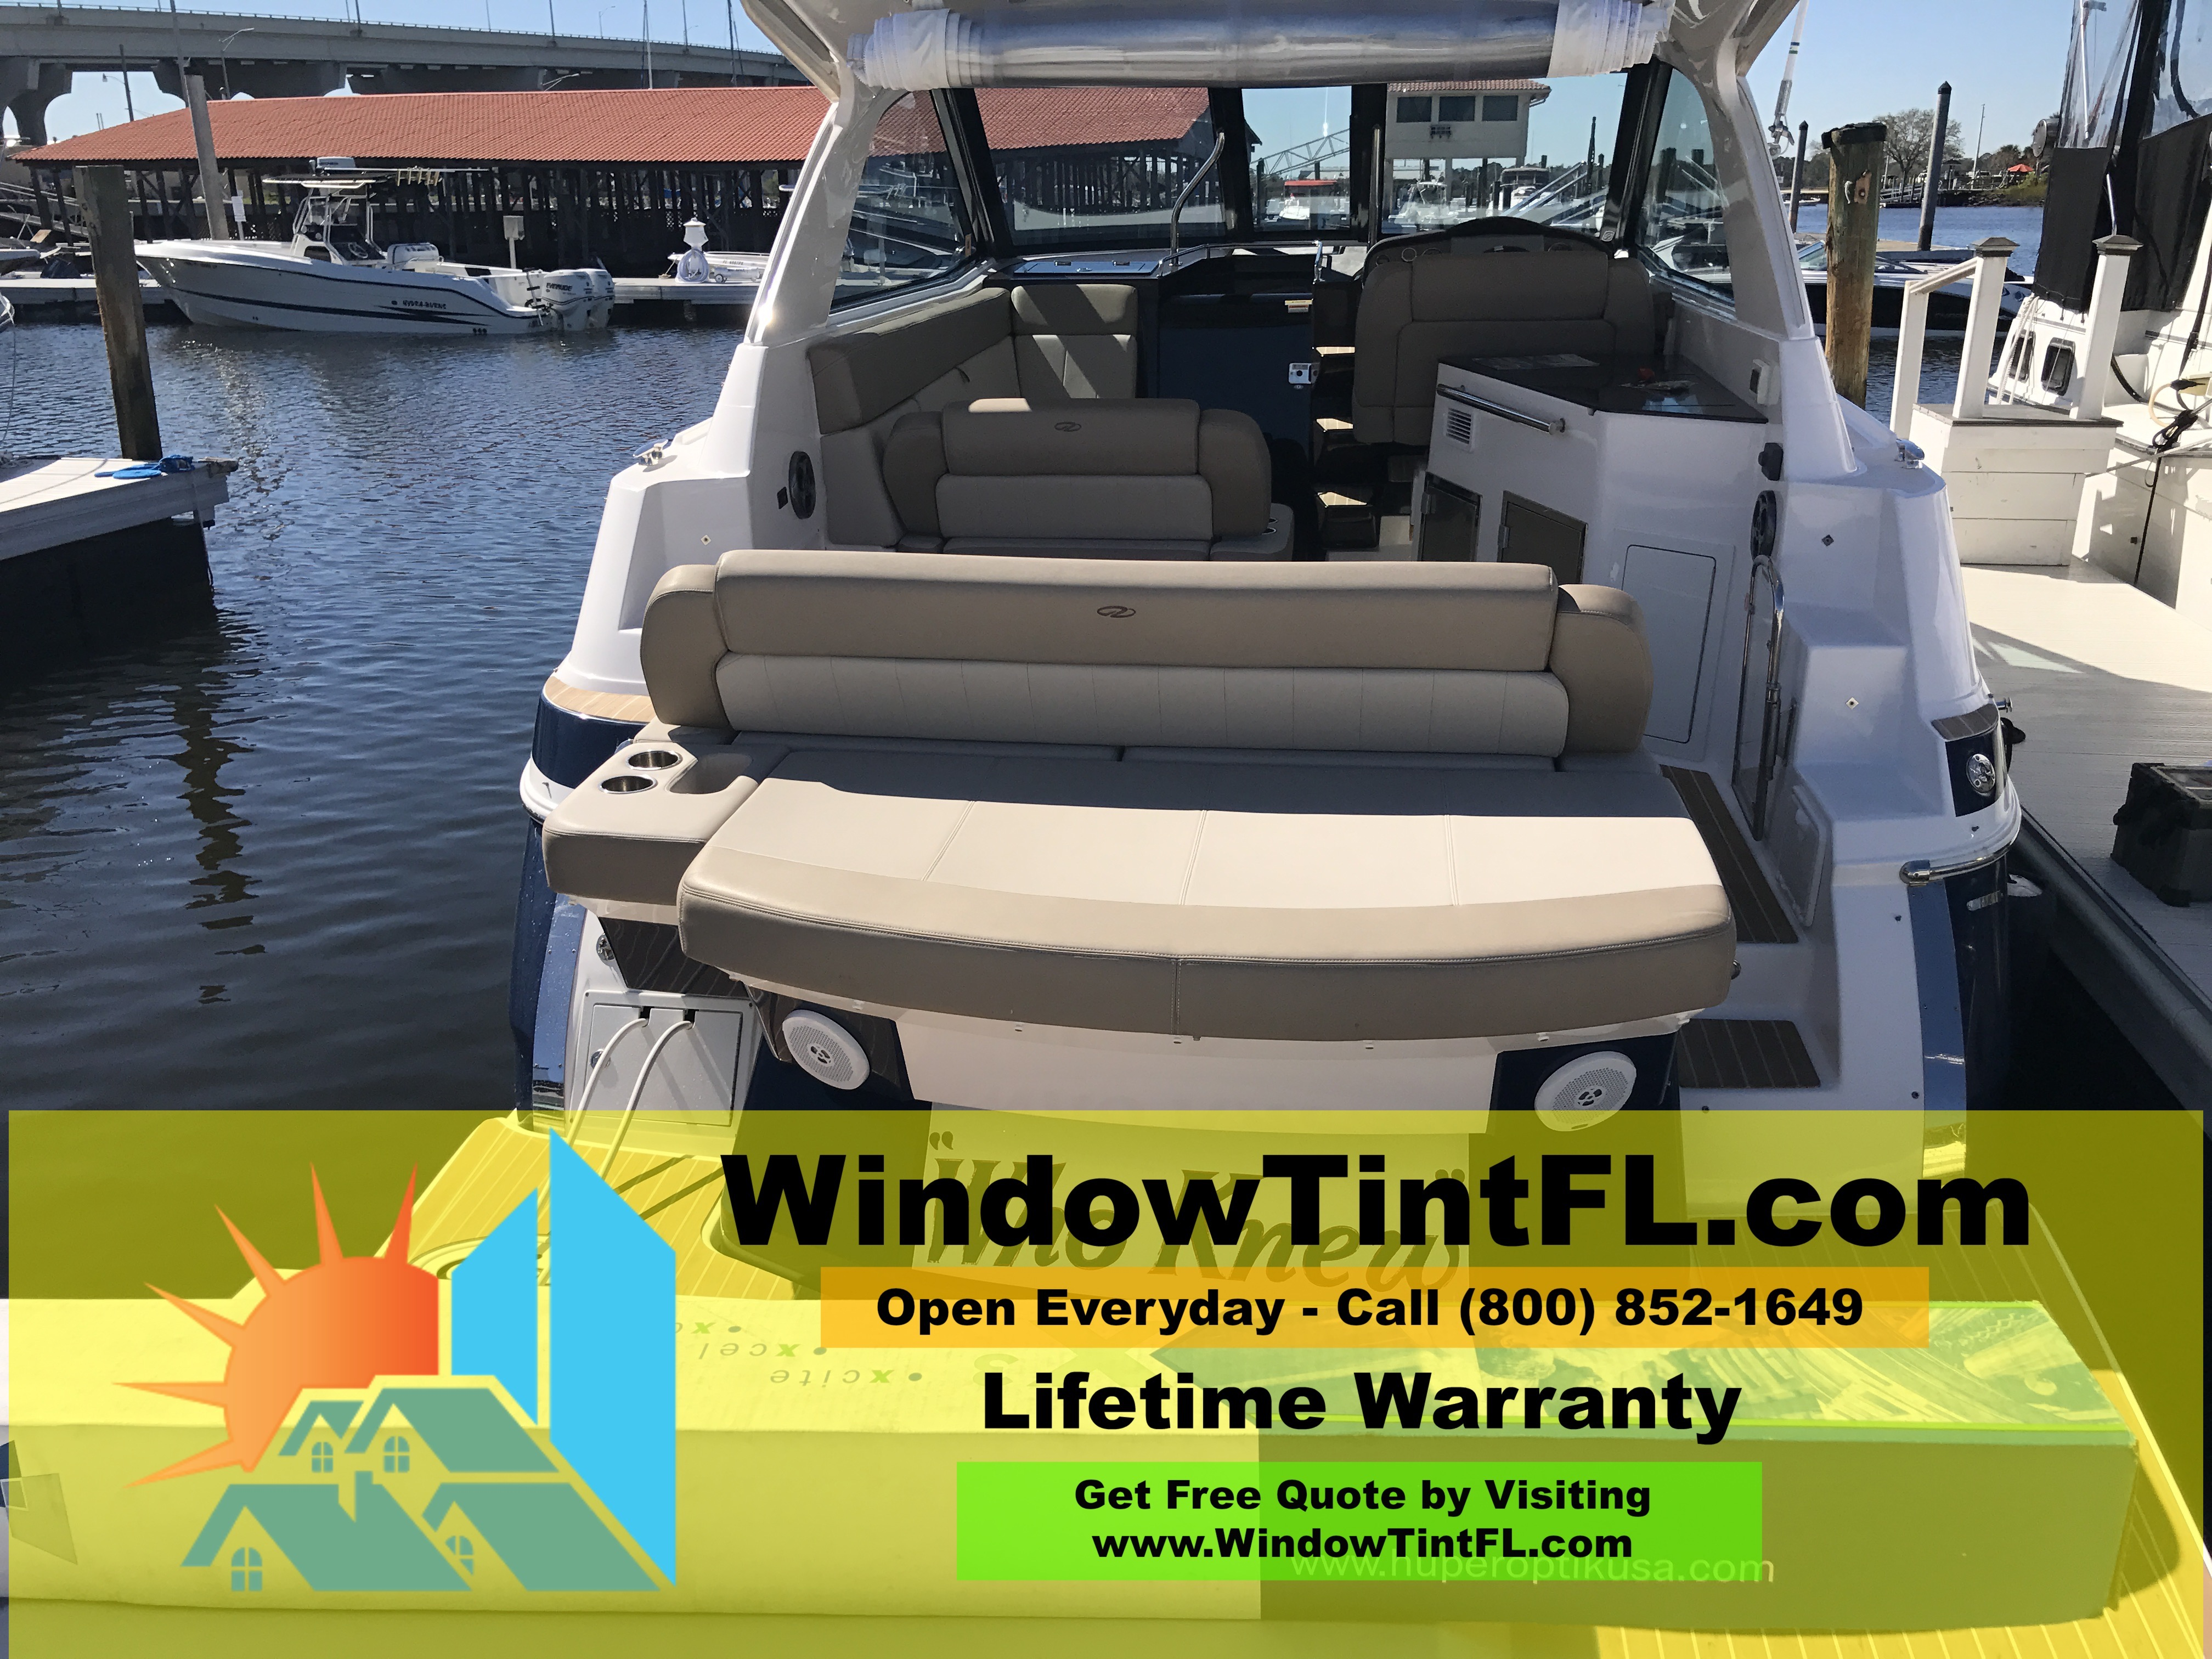 Top 3 Benefits Of Boat Window Tinting In Naples Florida